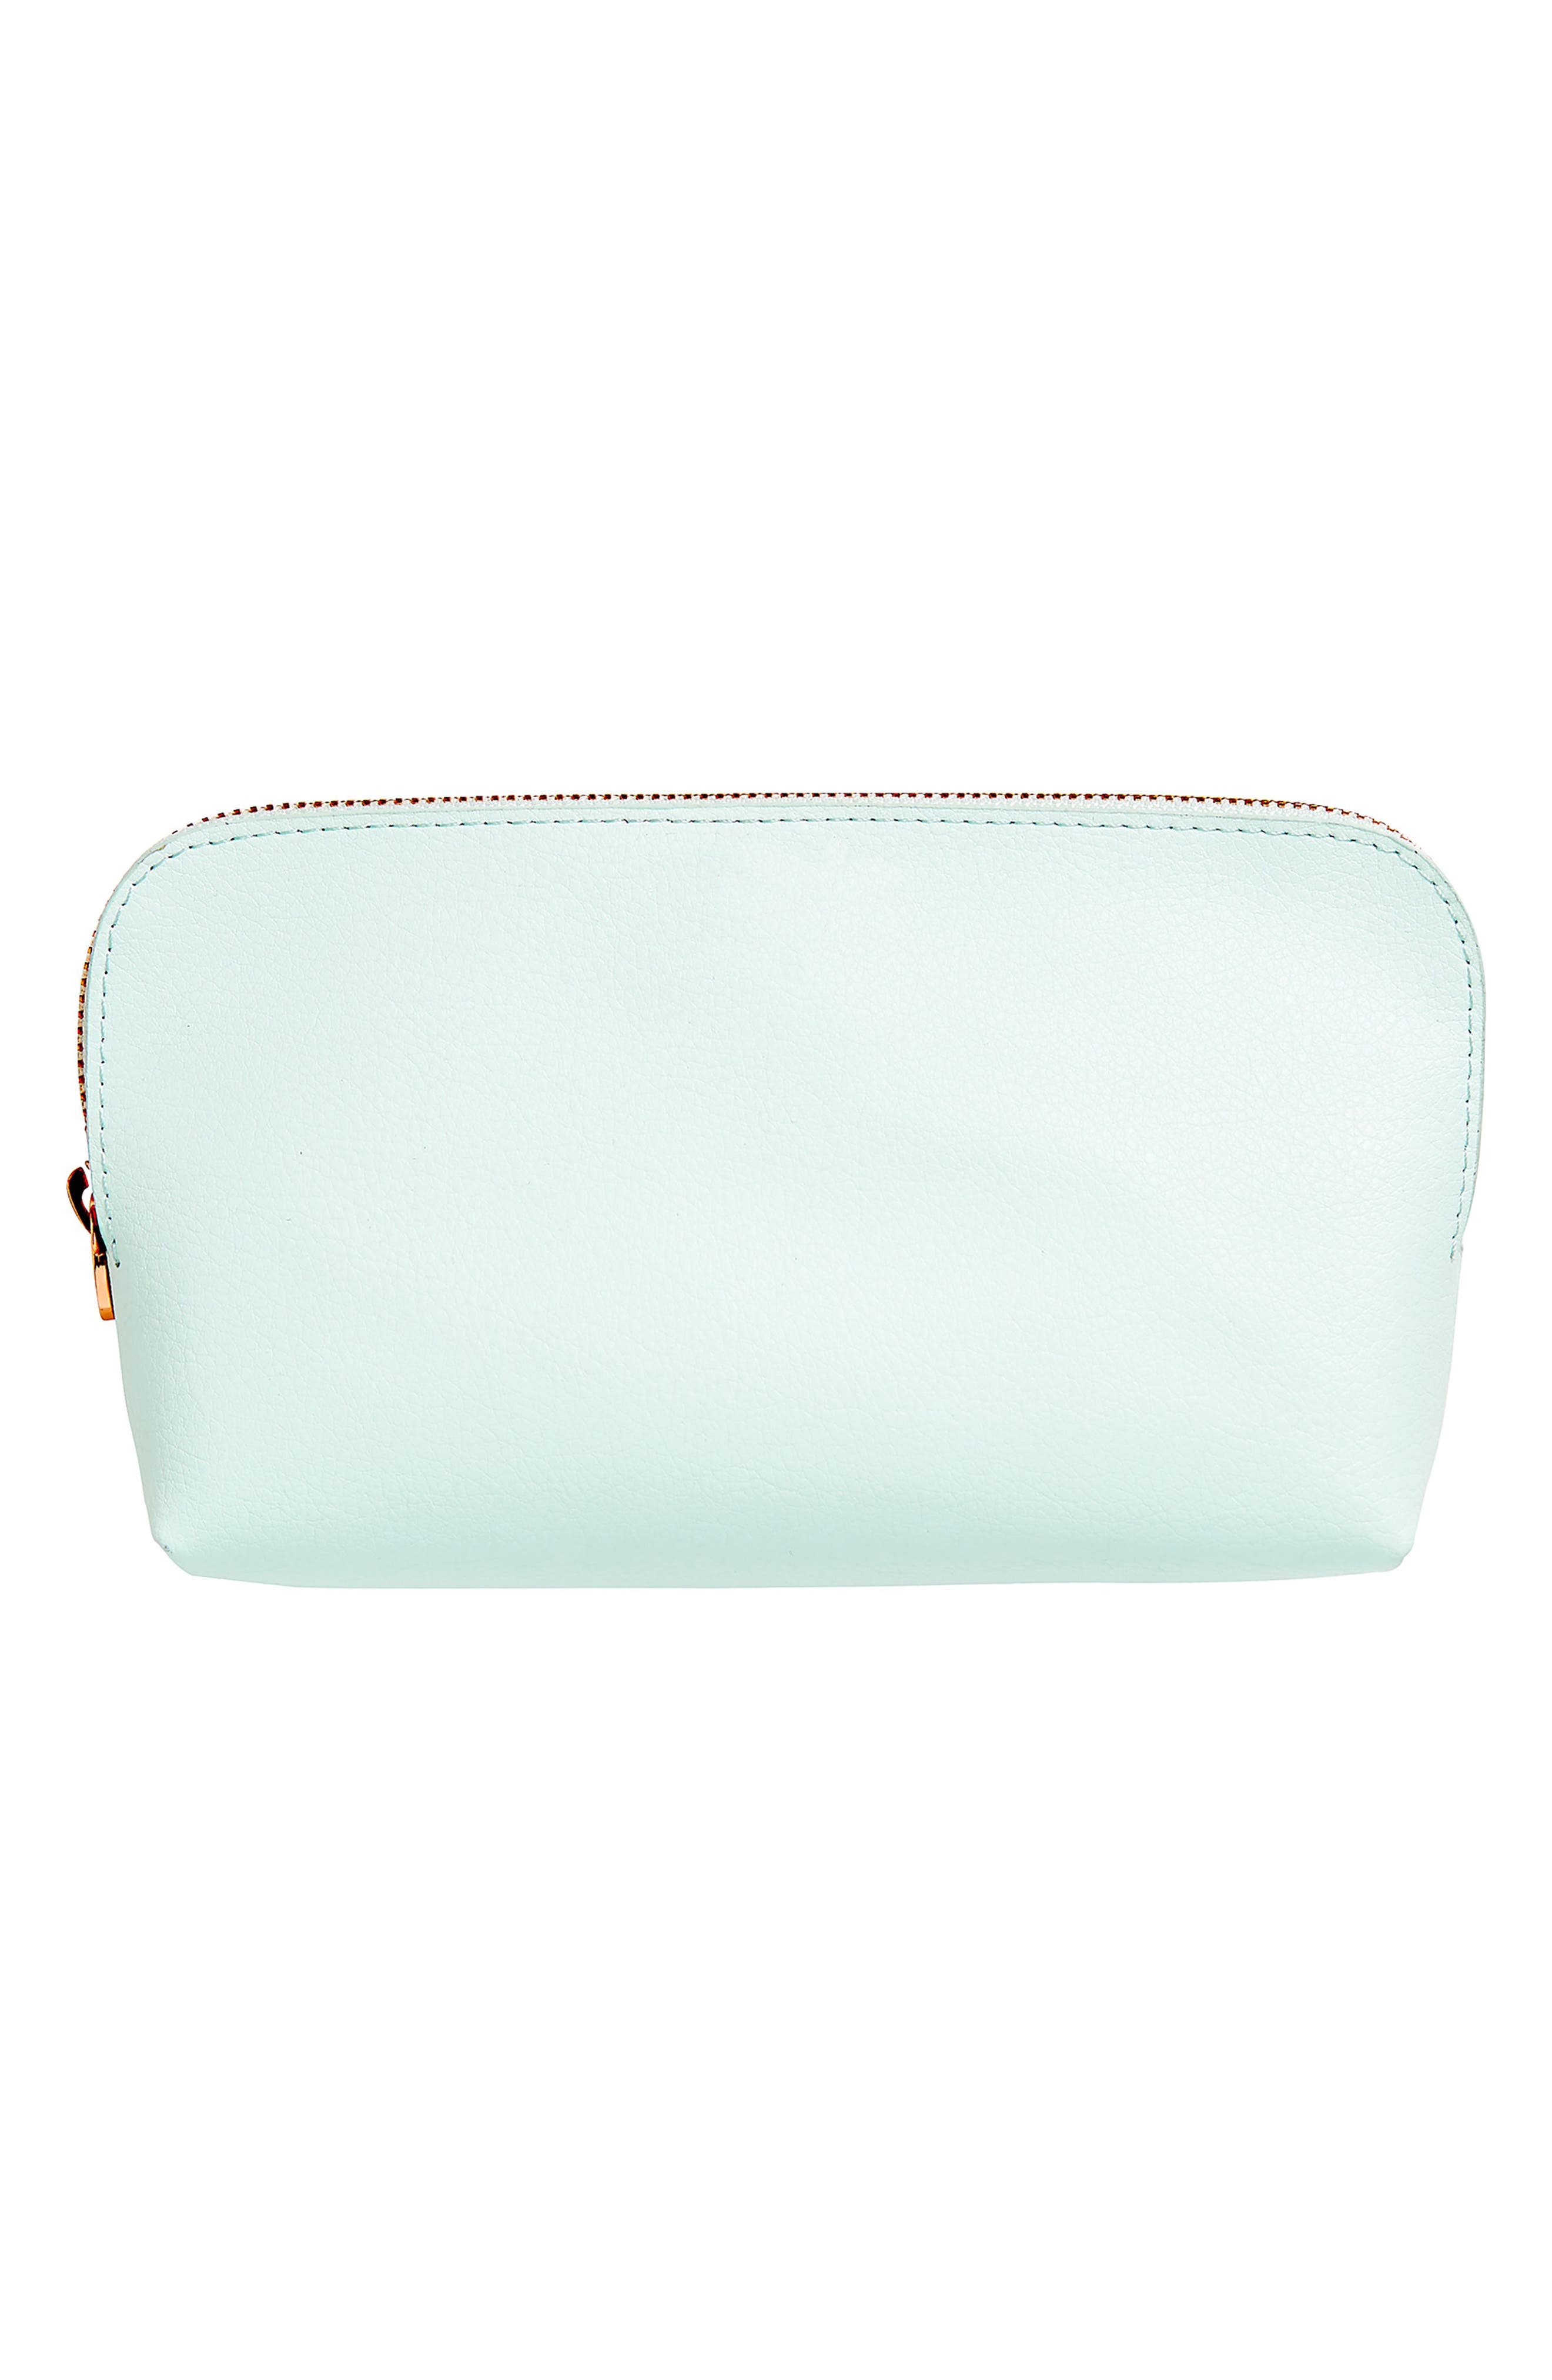 Essential Leather Zip Pouch,                         Main,                         color, MINT